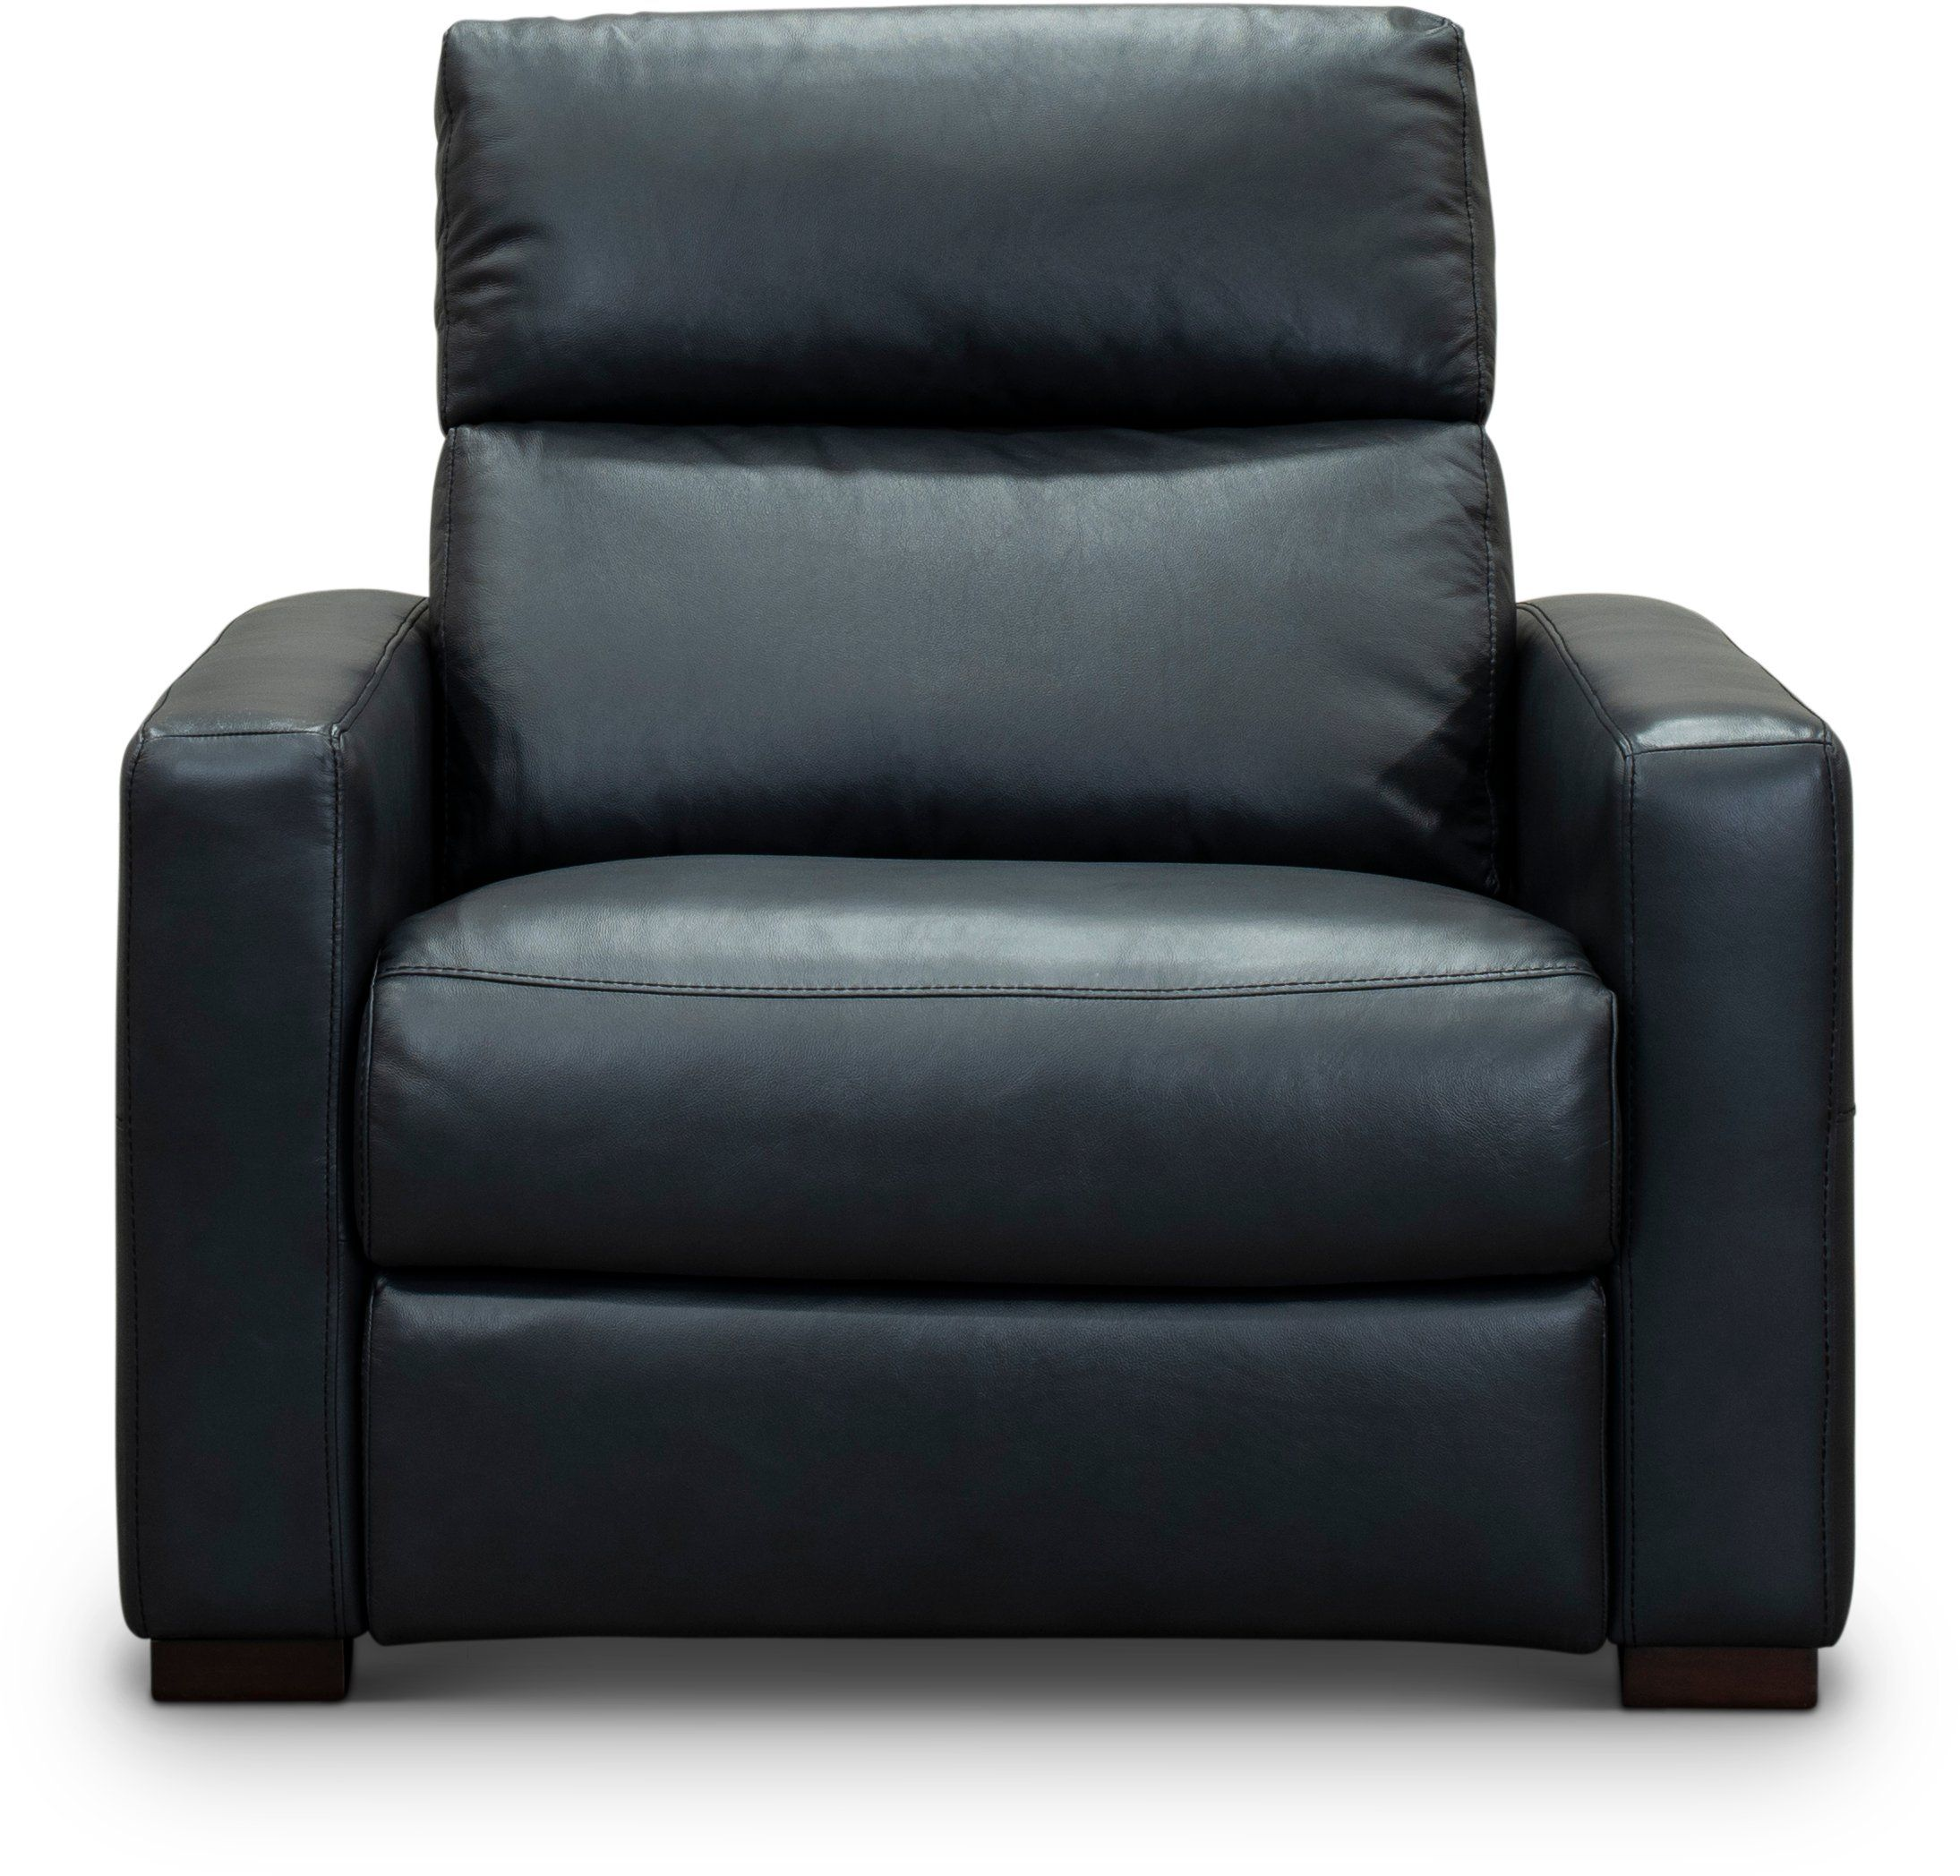 Best Navy Blue Leather Match Power Recliner Chair And A Half 400 x 300